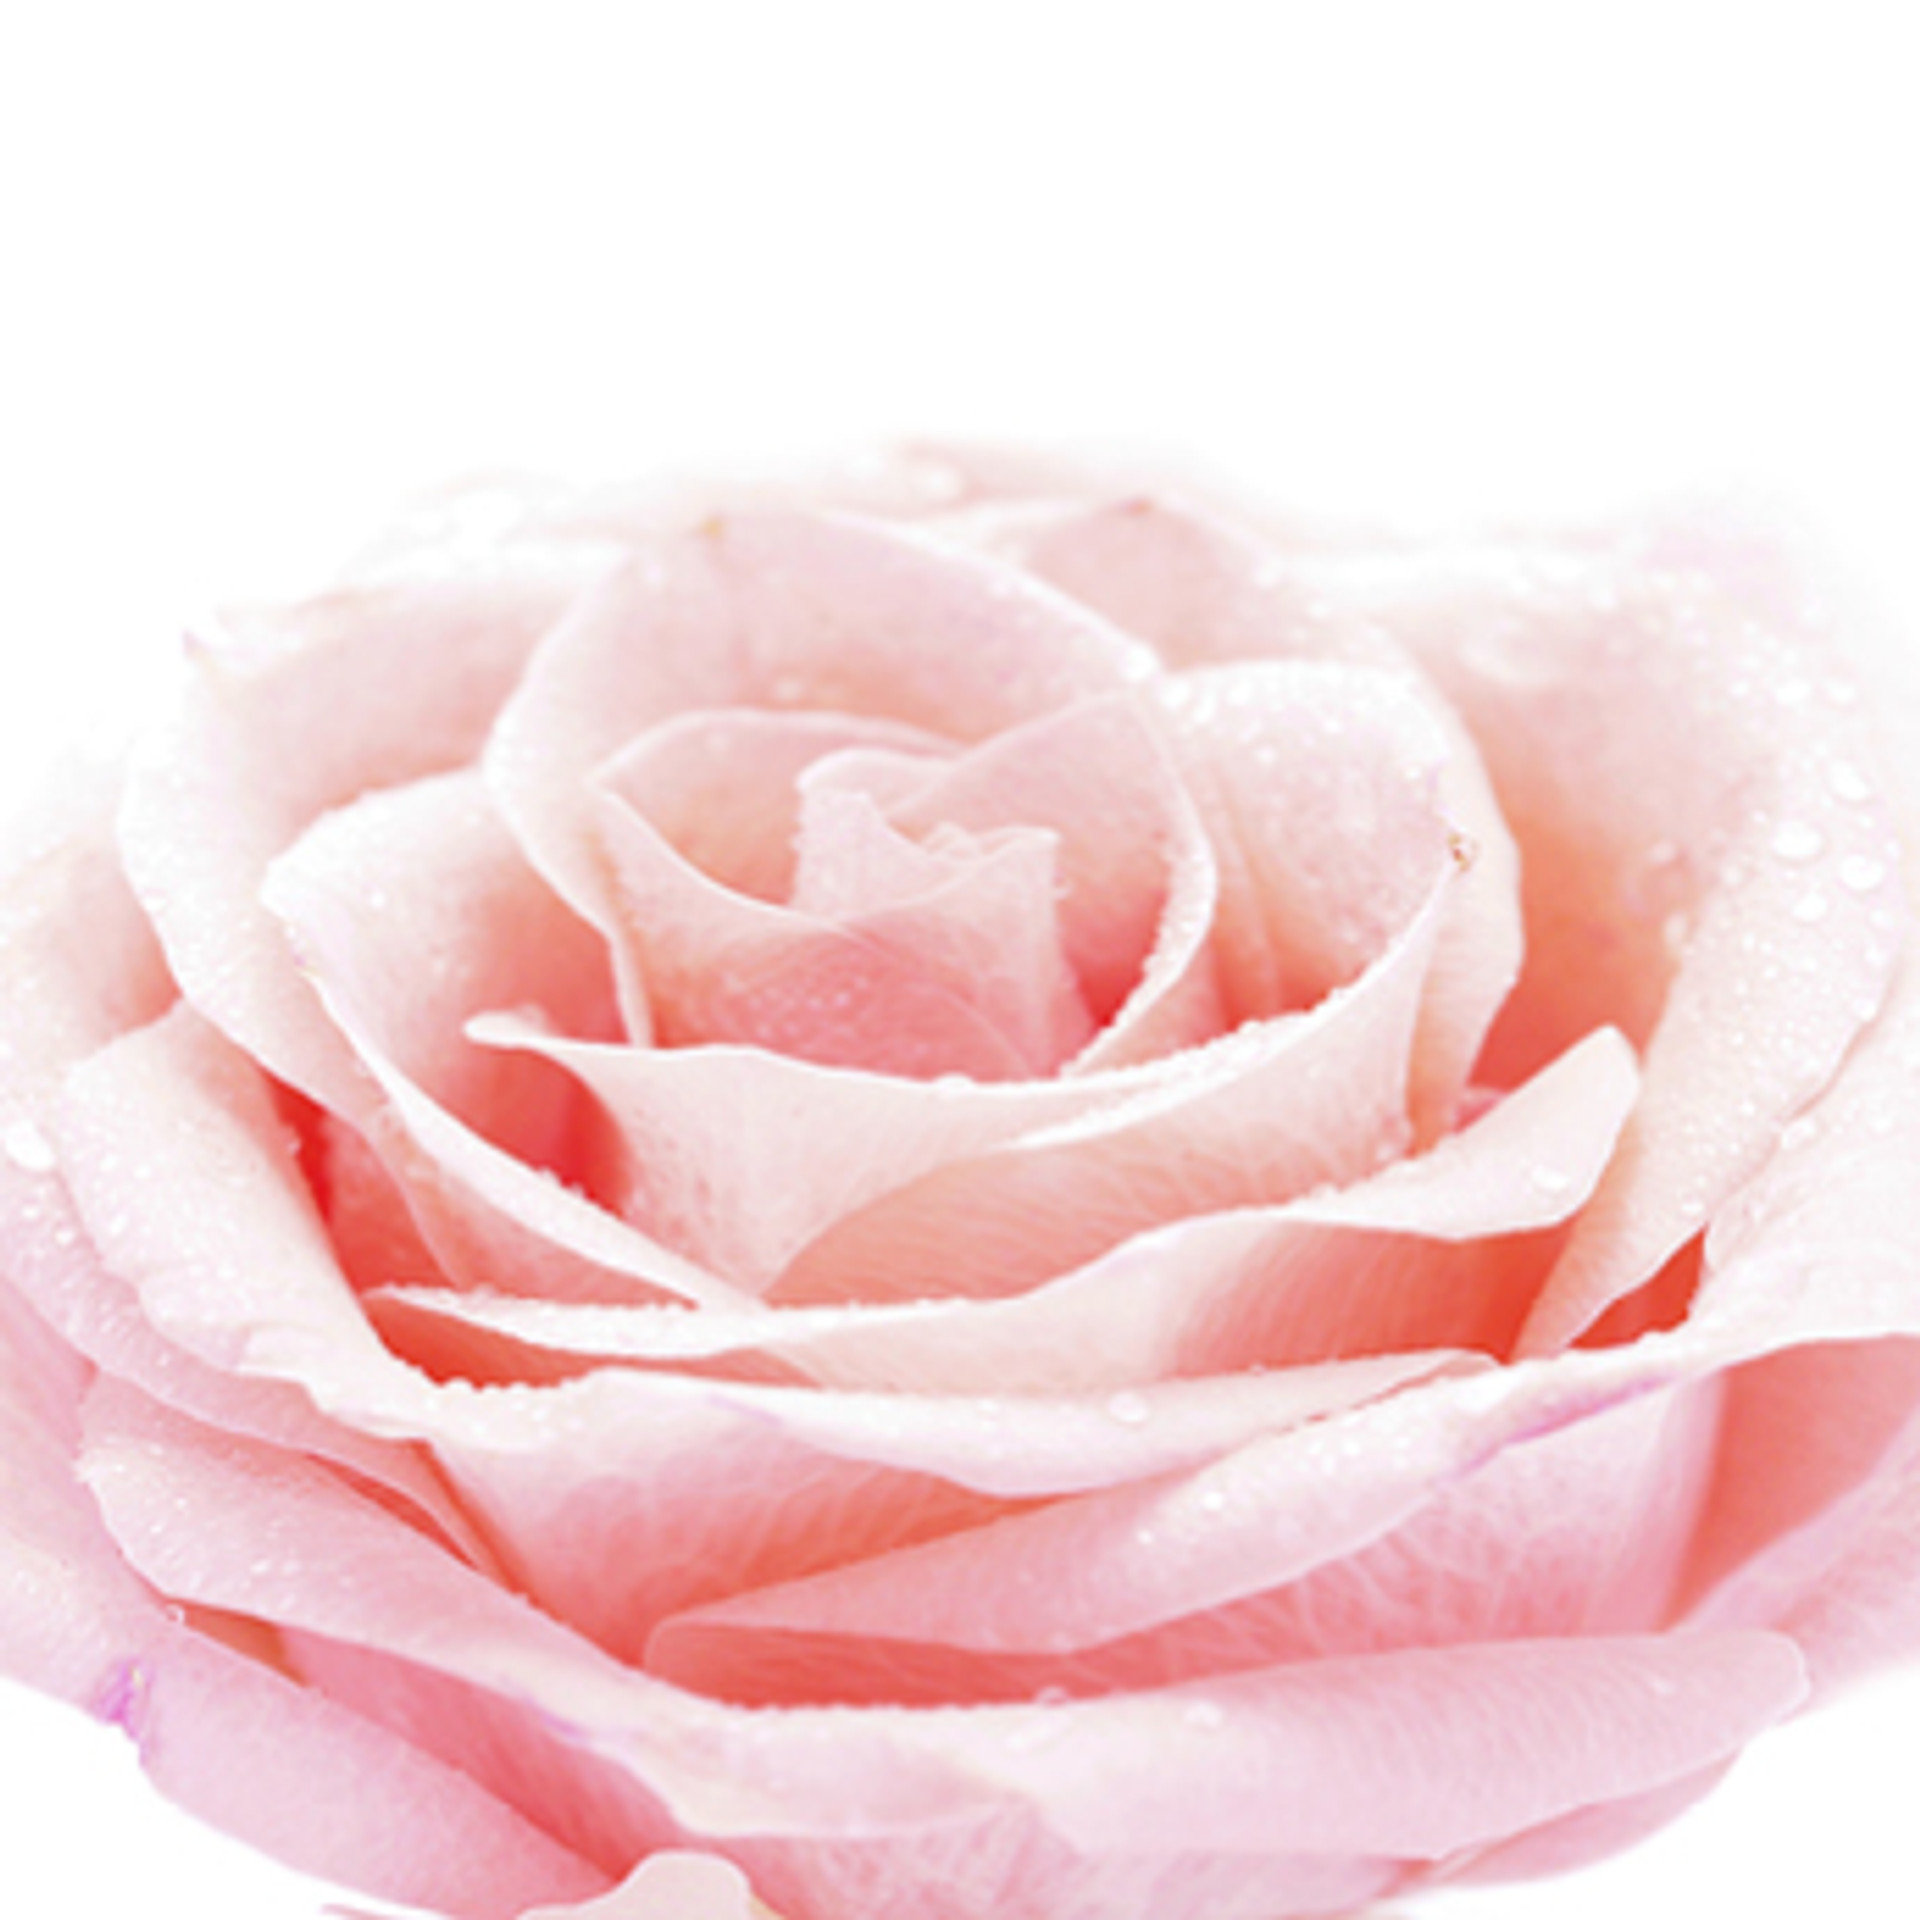 The benefits of rose essential oils